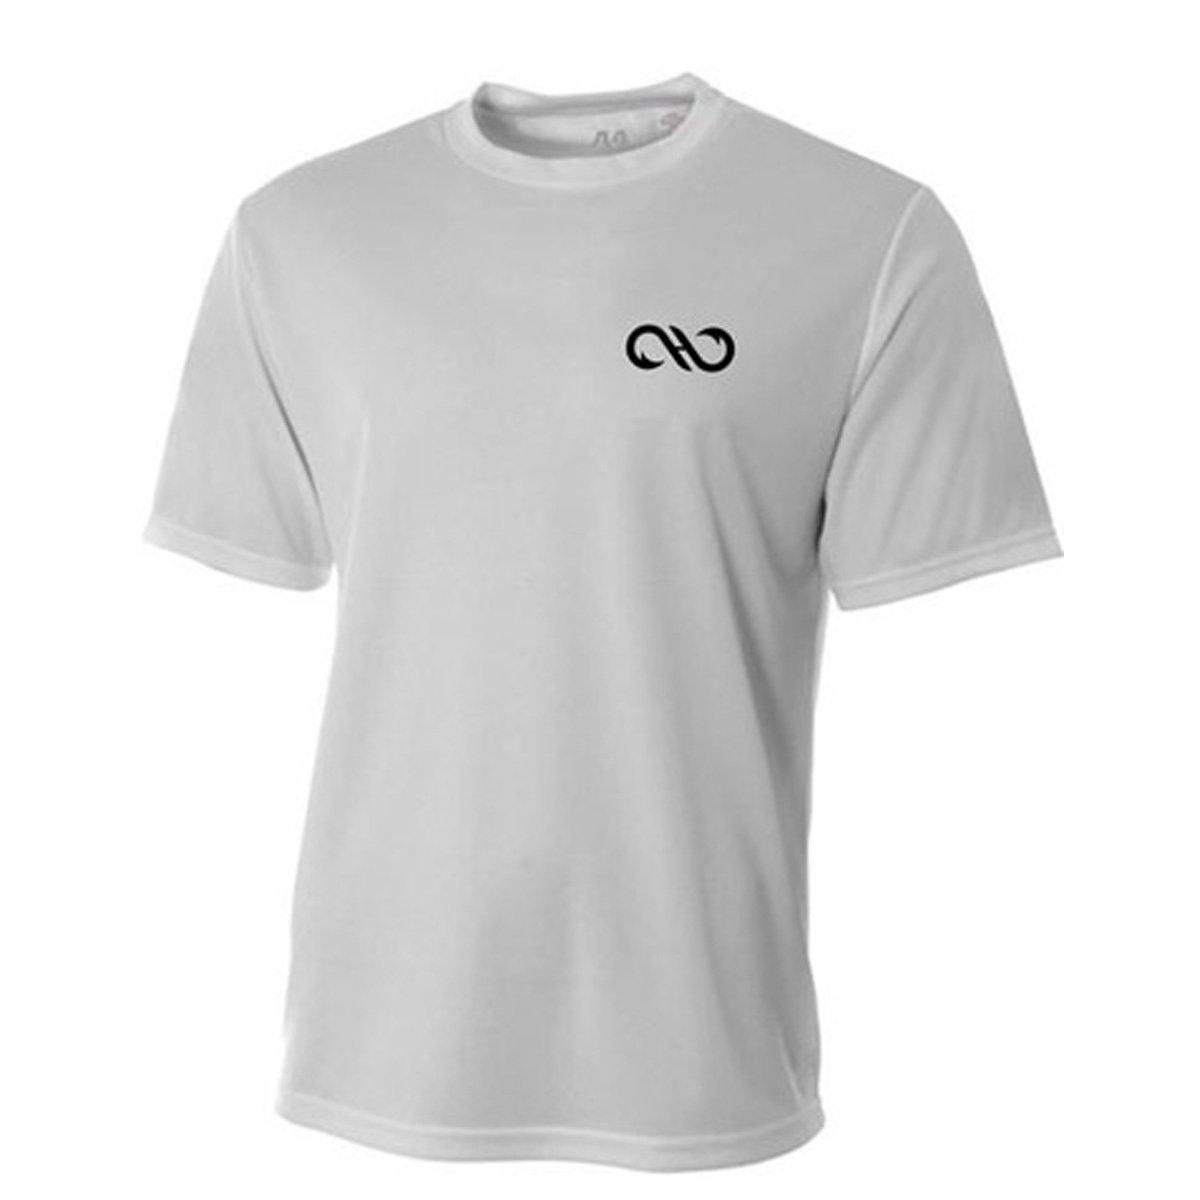 Archetype Performance Shirt (4347874934856)